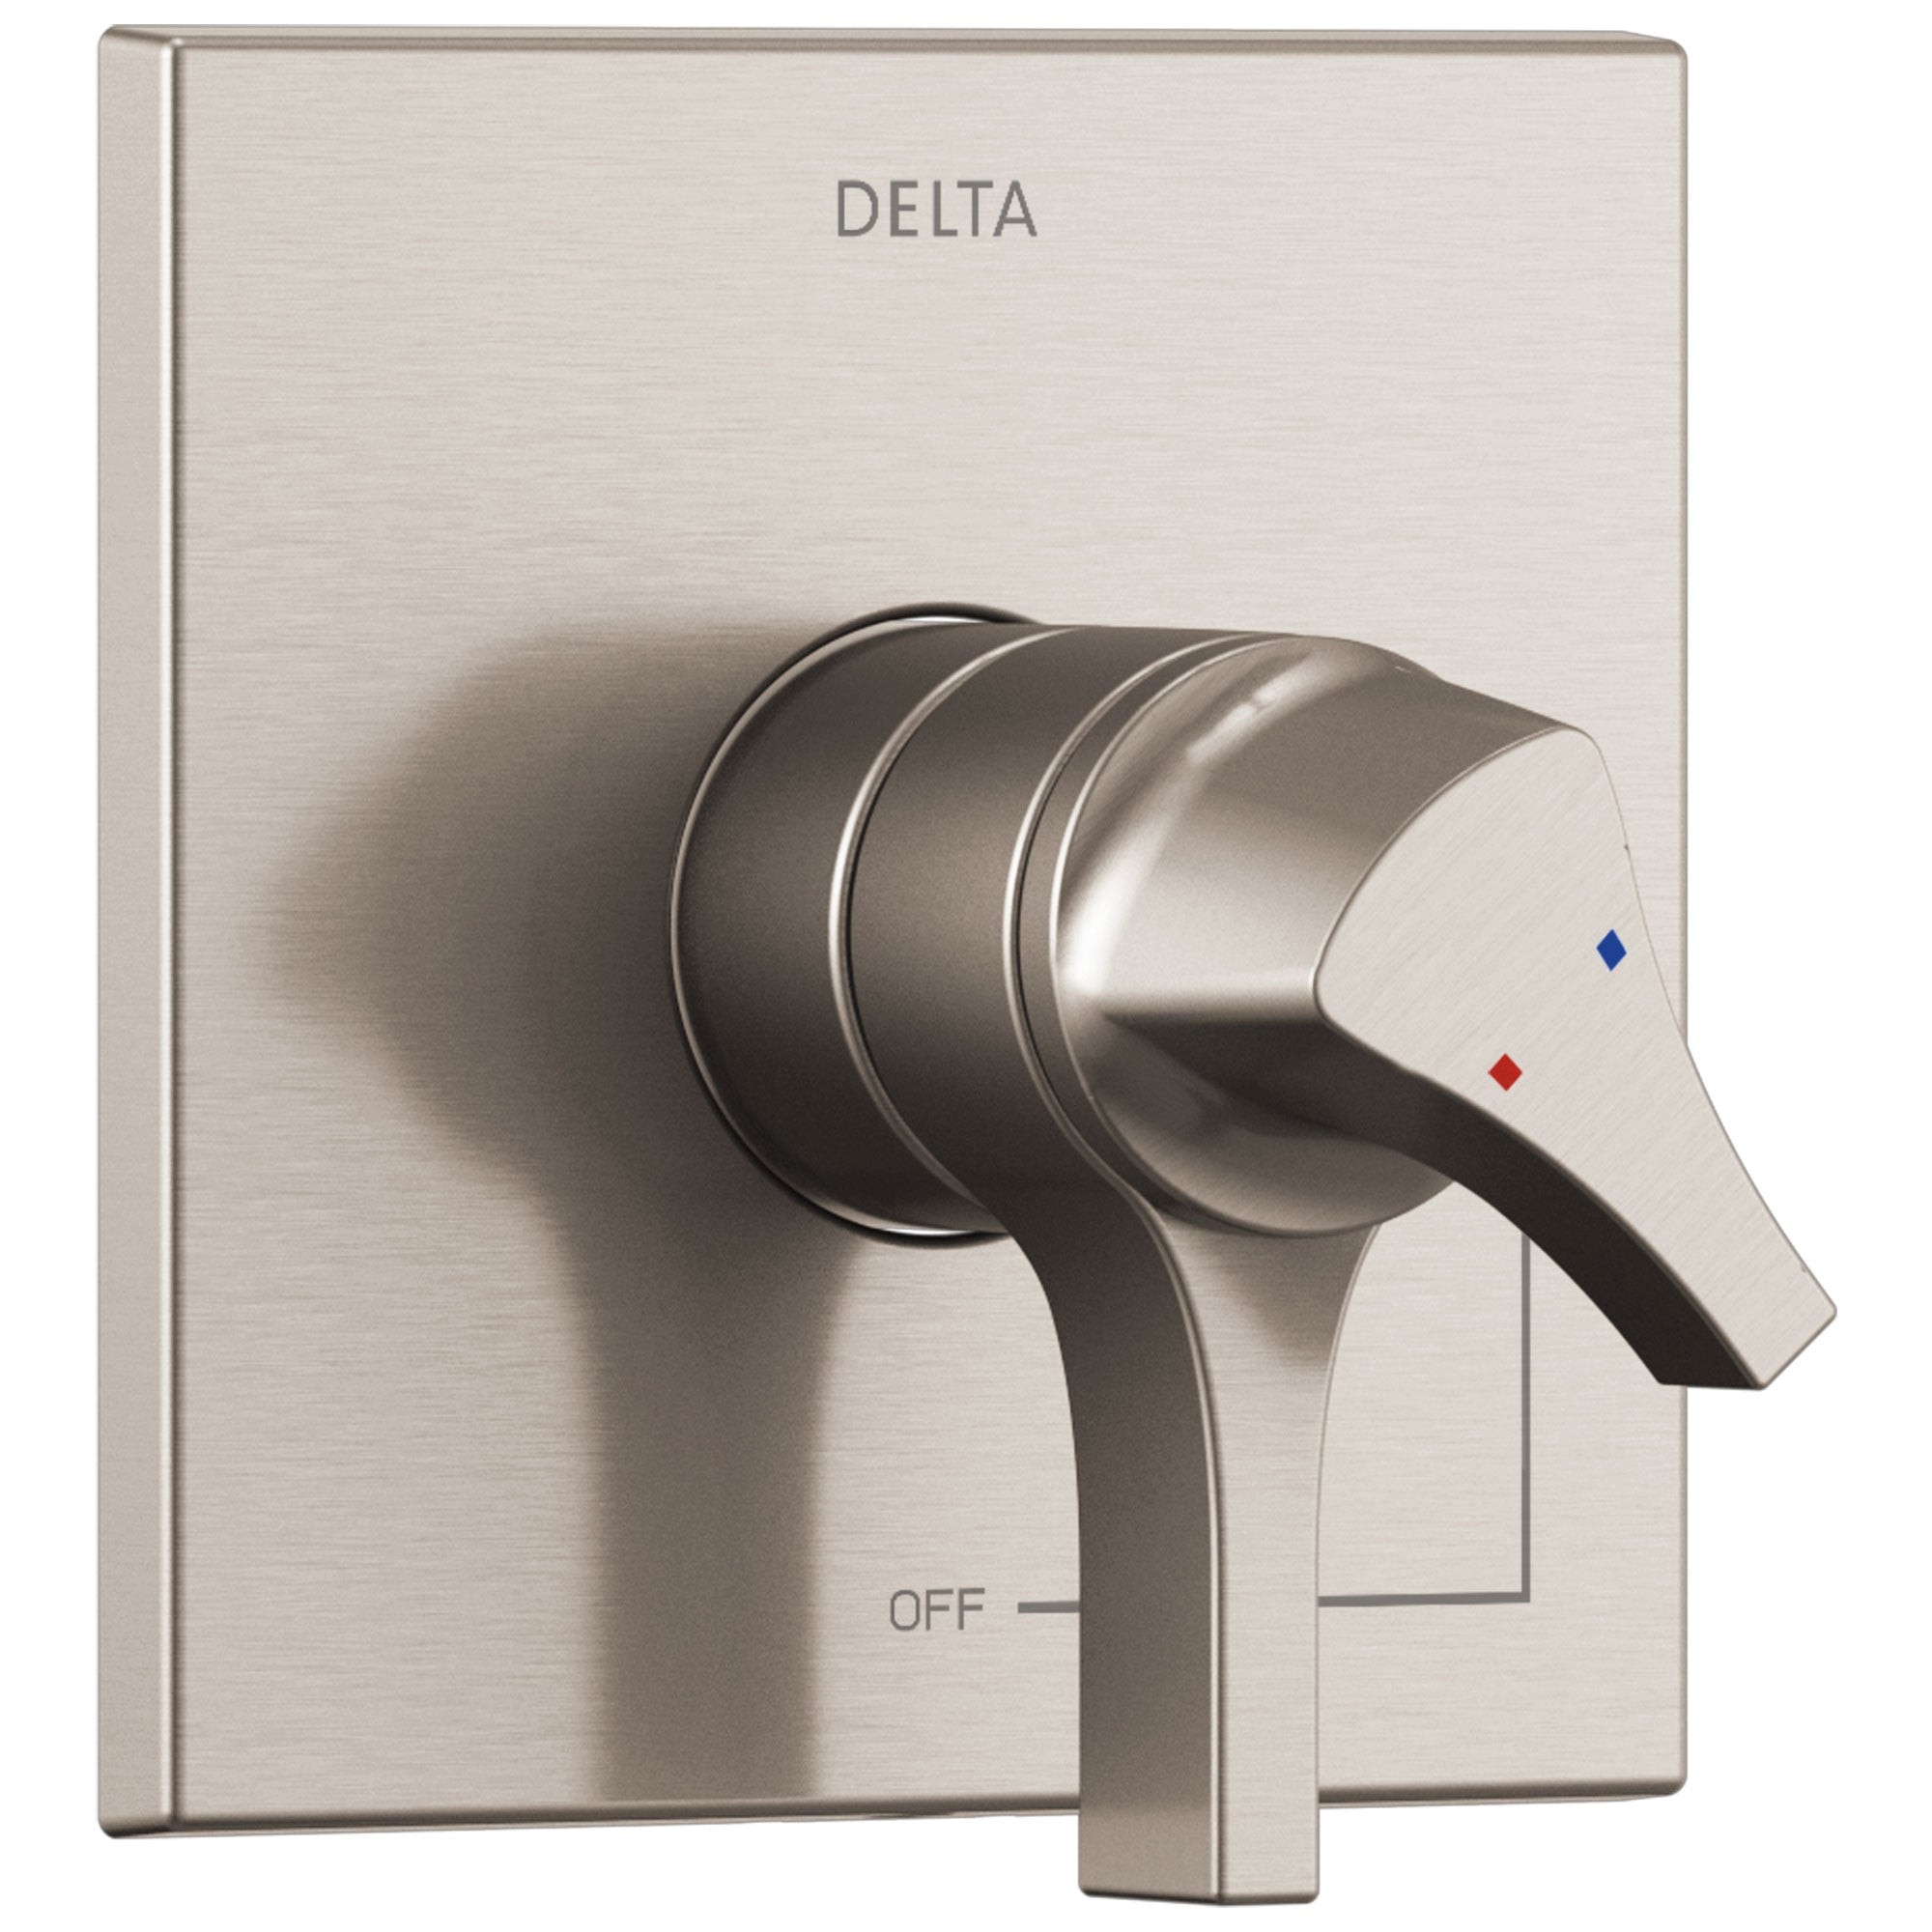 Delta Zura Collection Stainless Steel Finish Monitor 17 Dual Temperature and Water Pressure Shower Faucet Control Handle Trim (Requires Valve) 743964